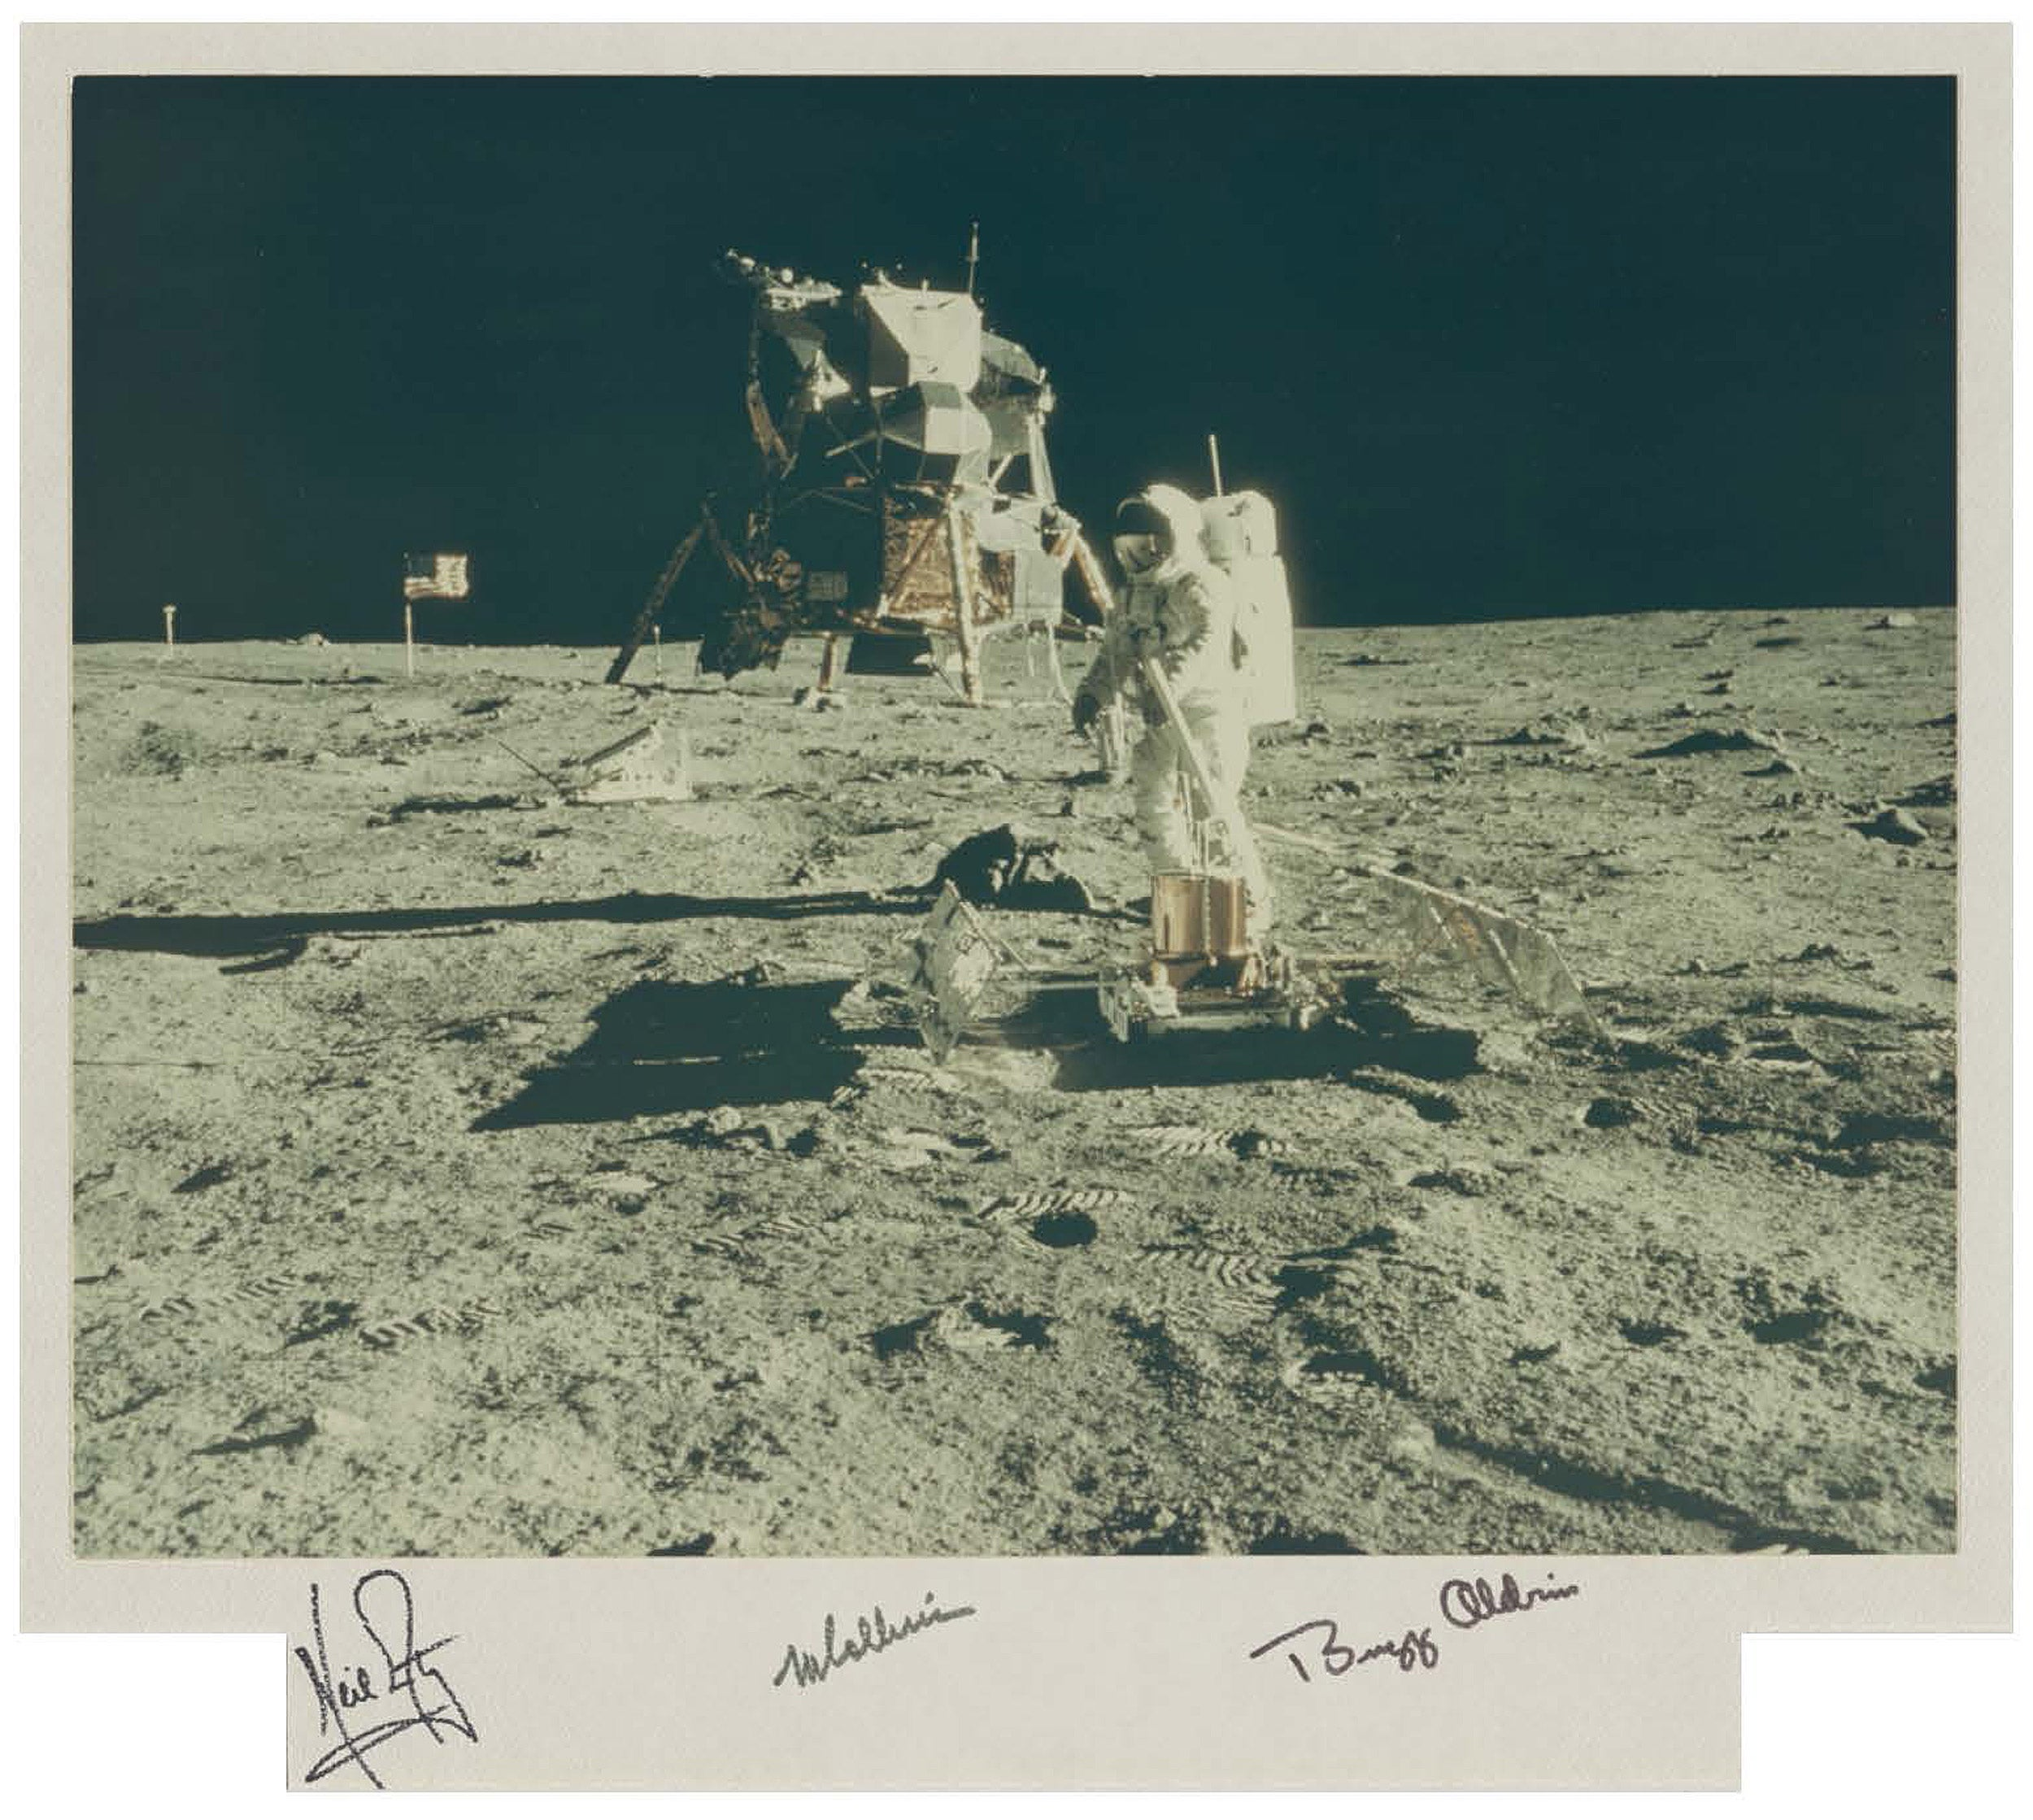 Buzz Aldrin deploys a seismometer to detect moonquakes and meteoroid impacts.